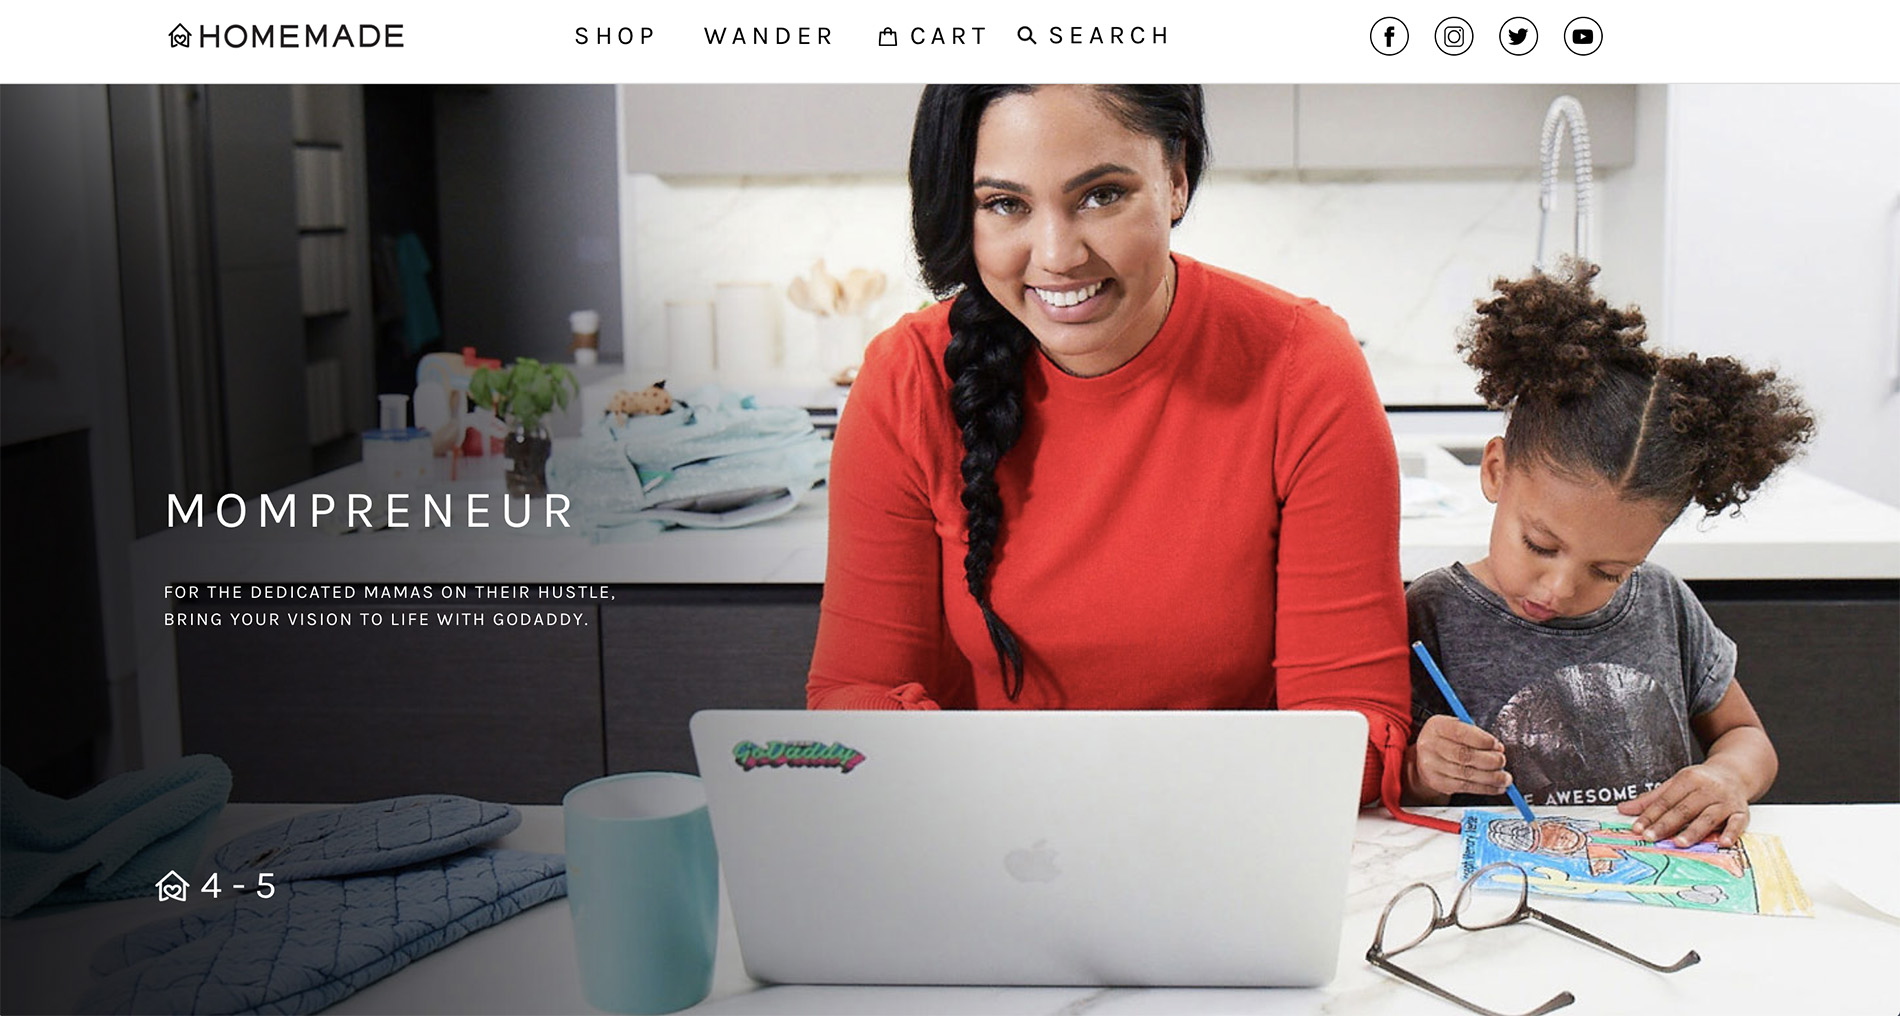 Ayesha Curry's new ShopHomeMade.com website, powered by GoDaddy